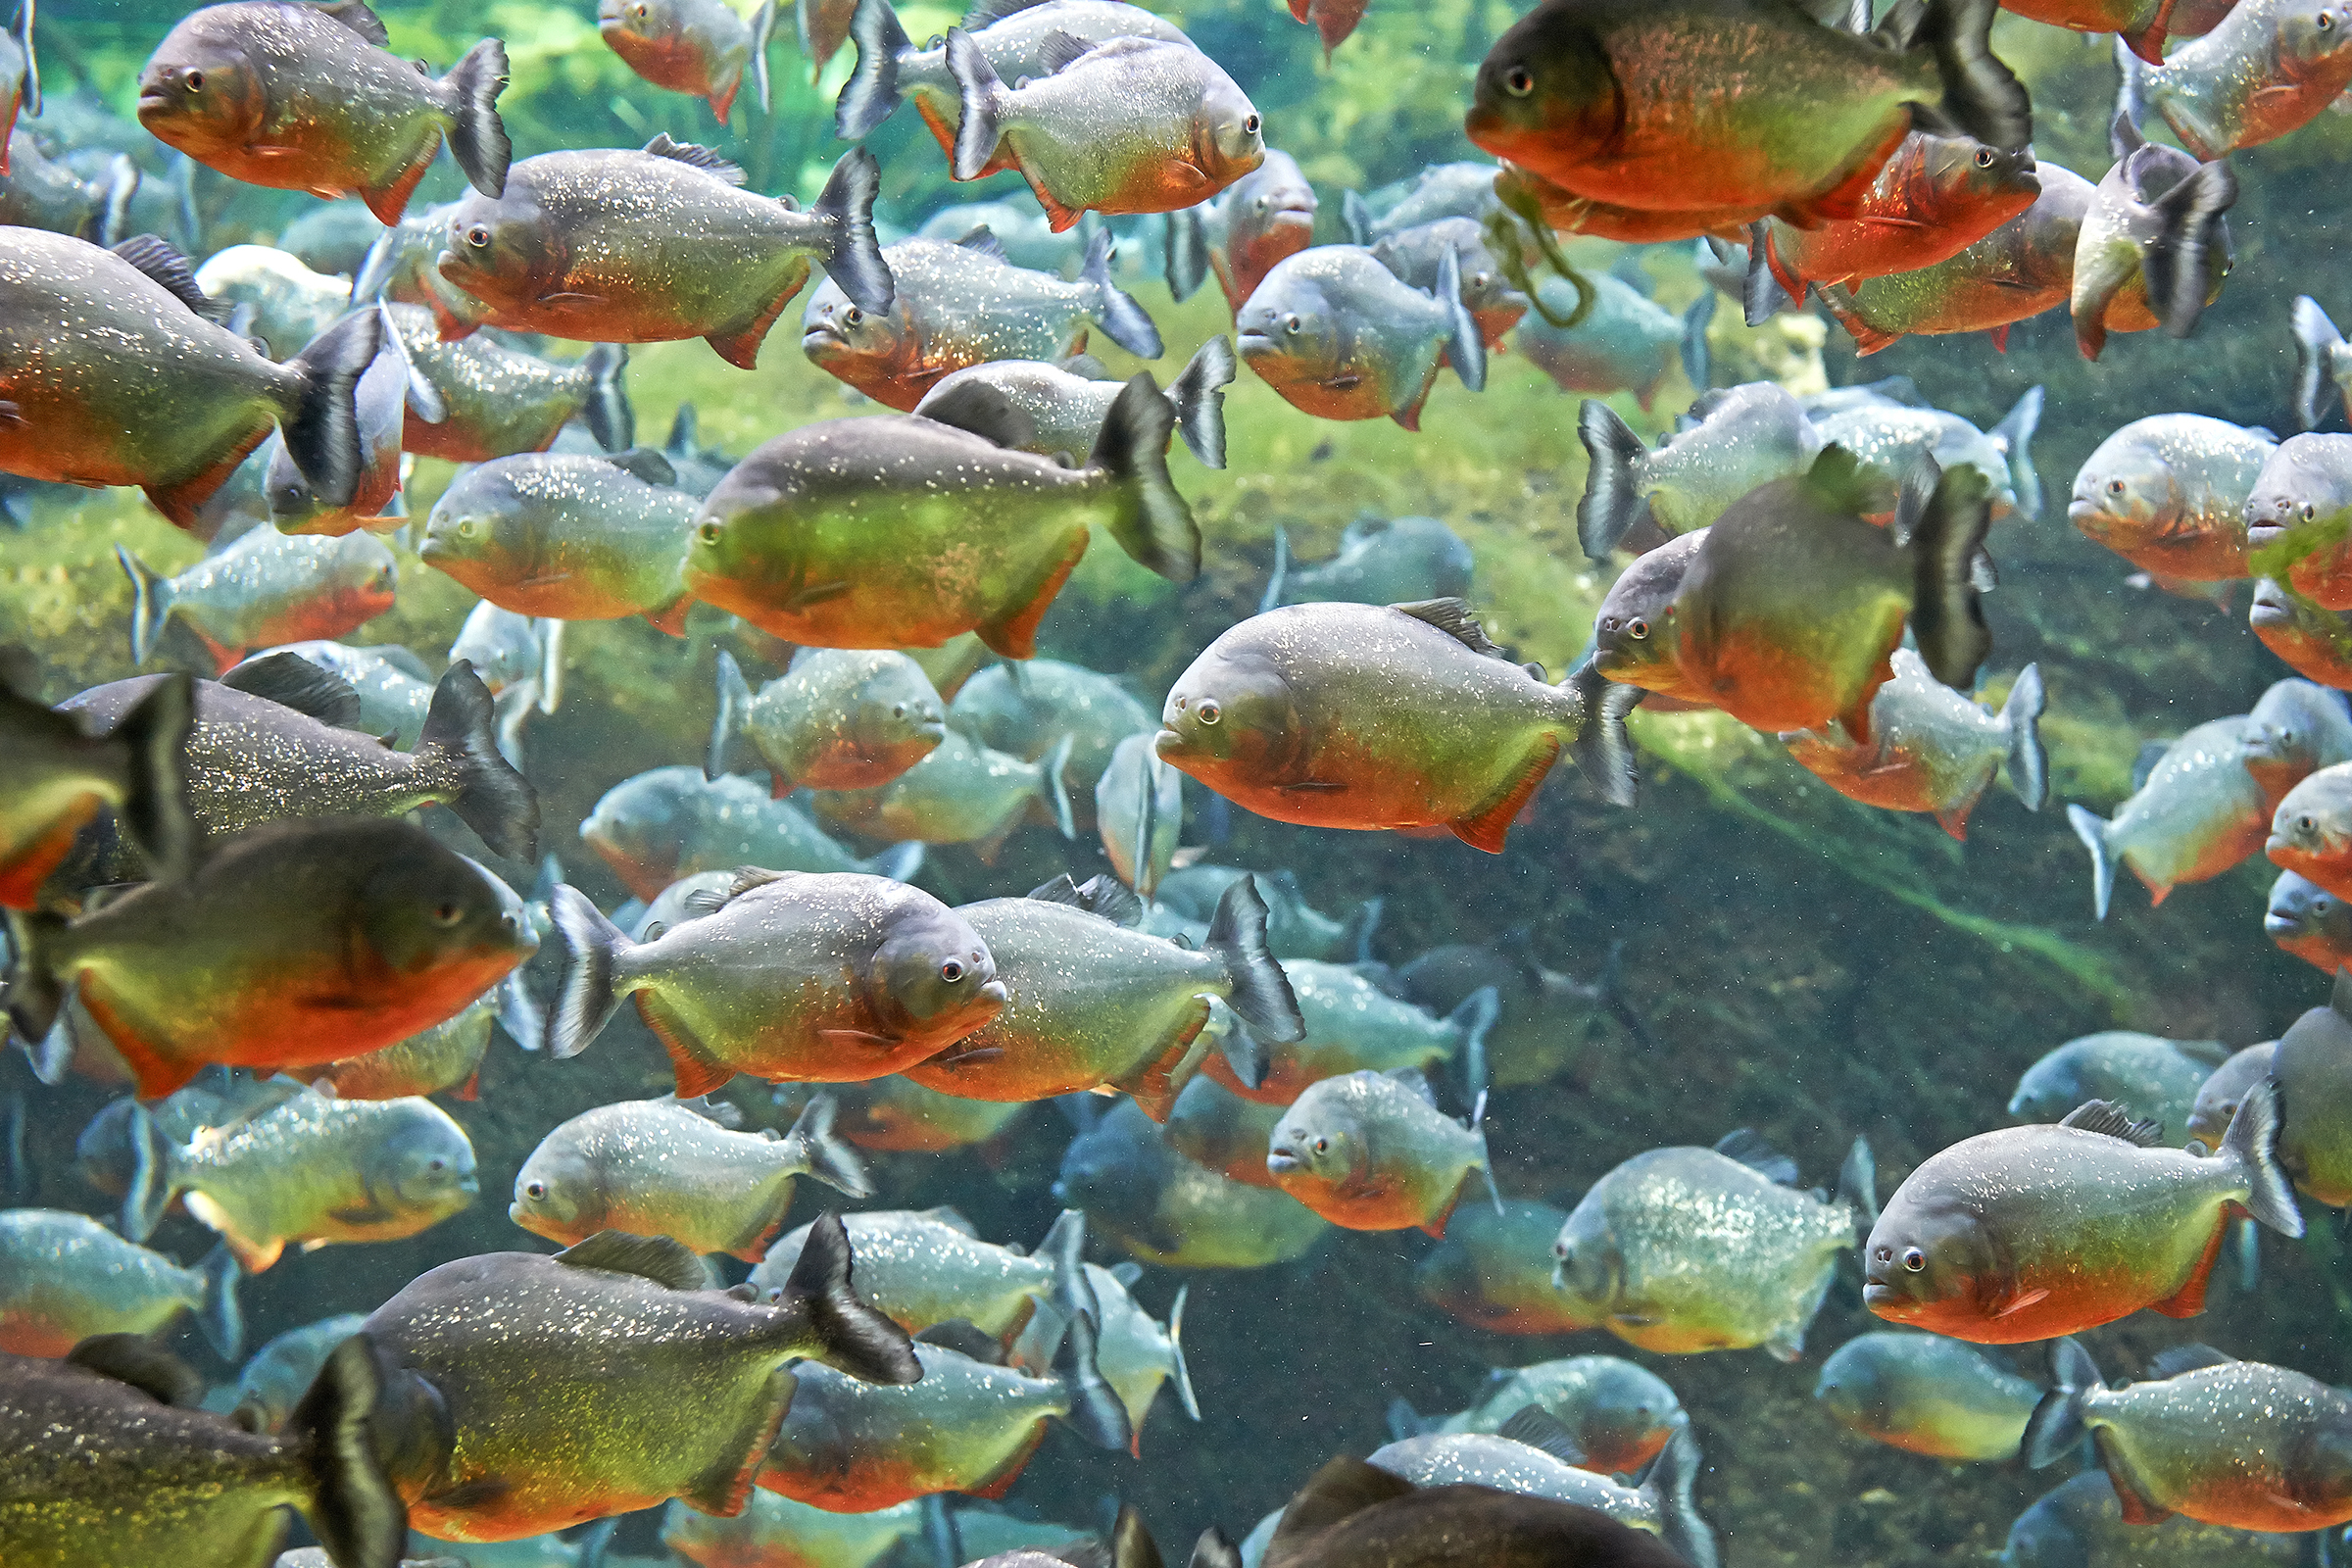 Red piranhas.Are they like the internet, gobbling up all cultural movements into small, bite-size chunks?